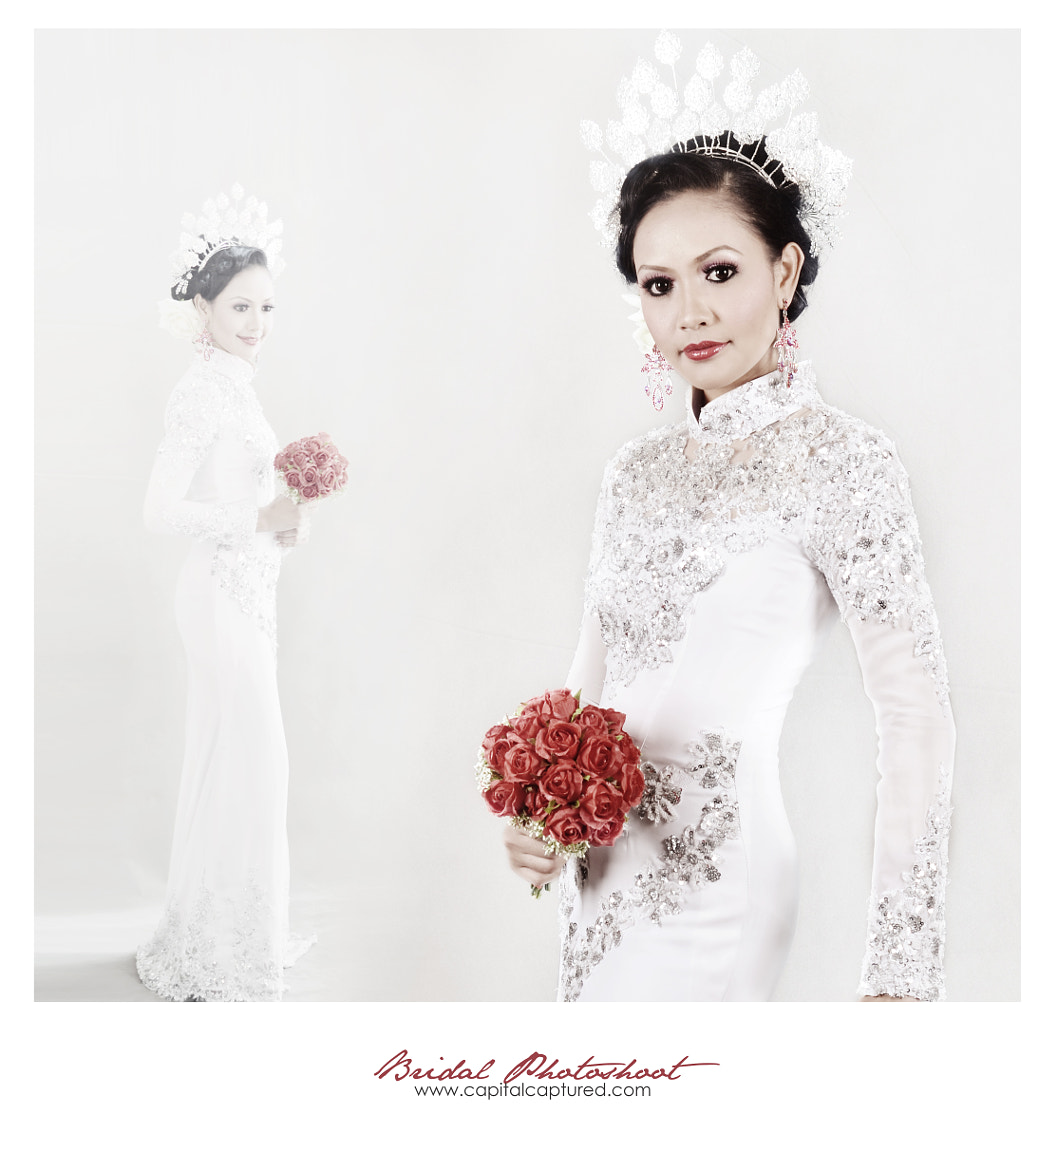 Photograph Bridal Photoshoot by Capital Captured on 500px